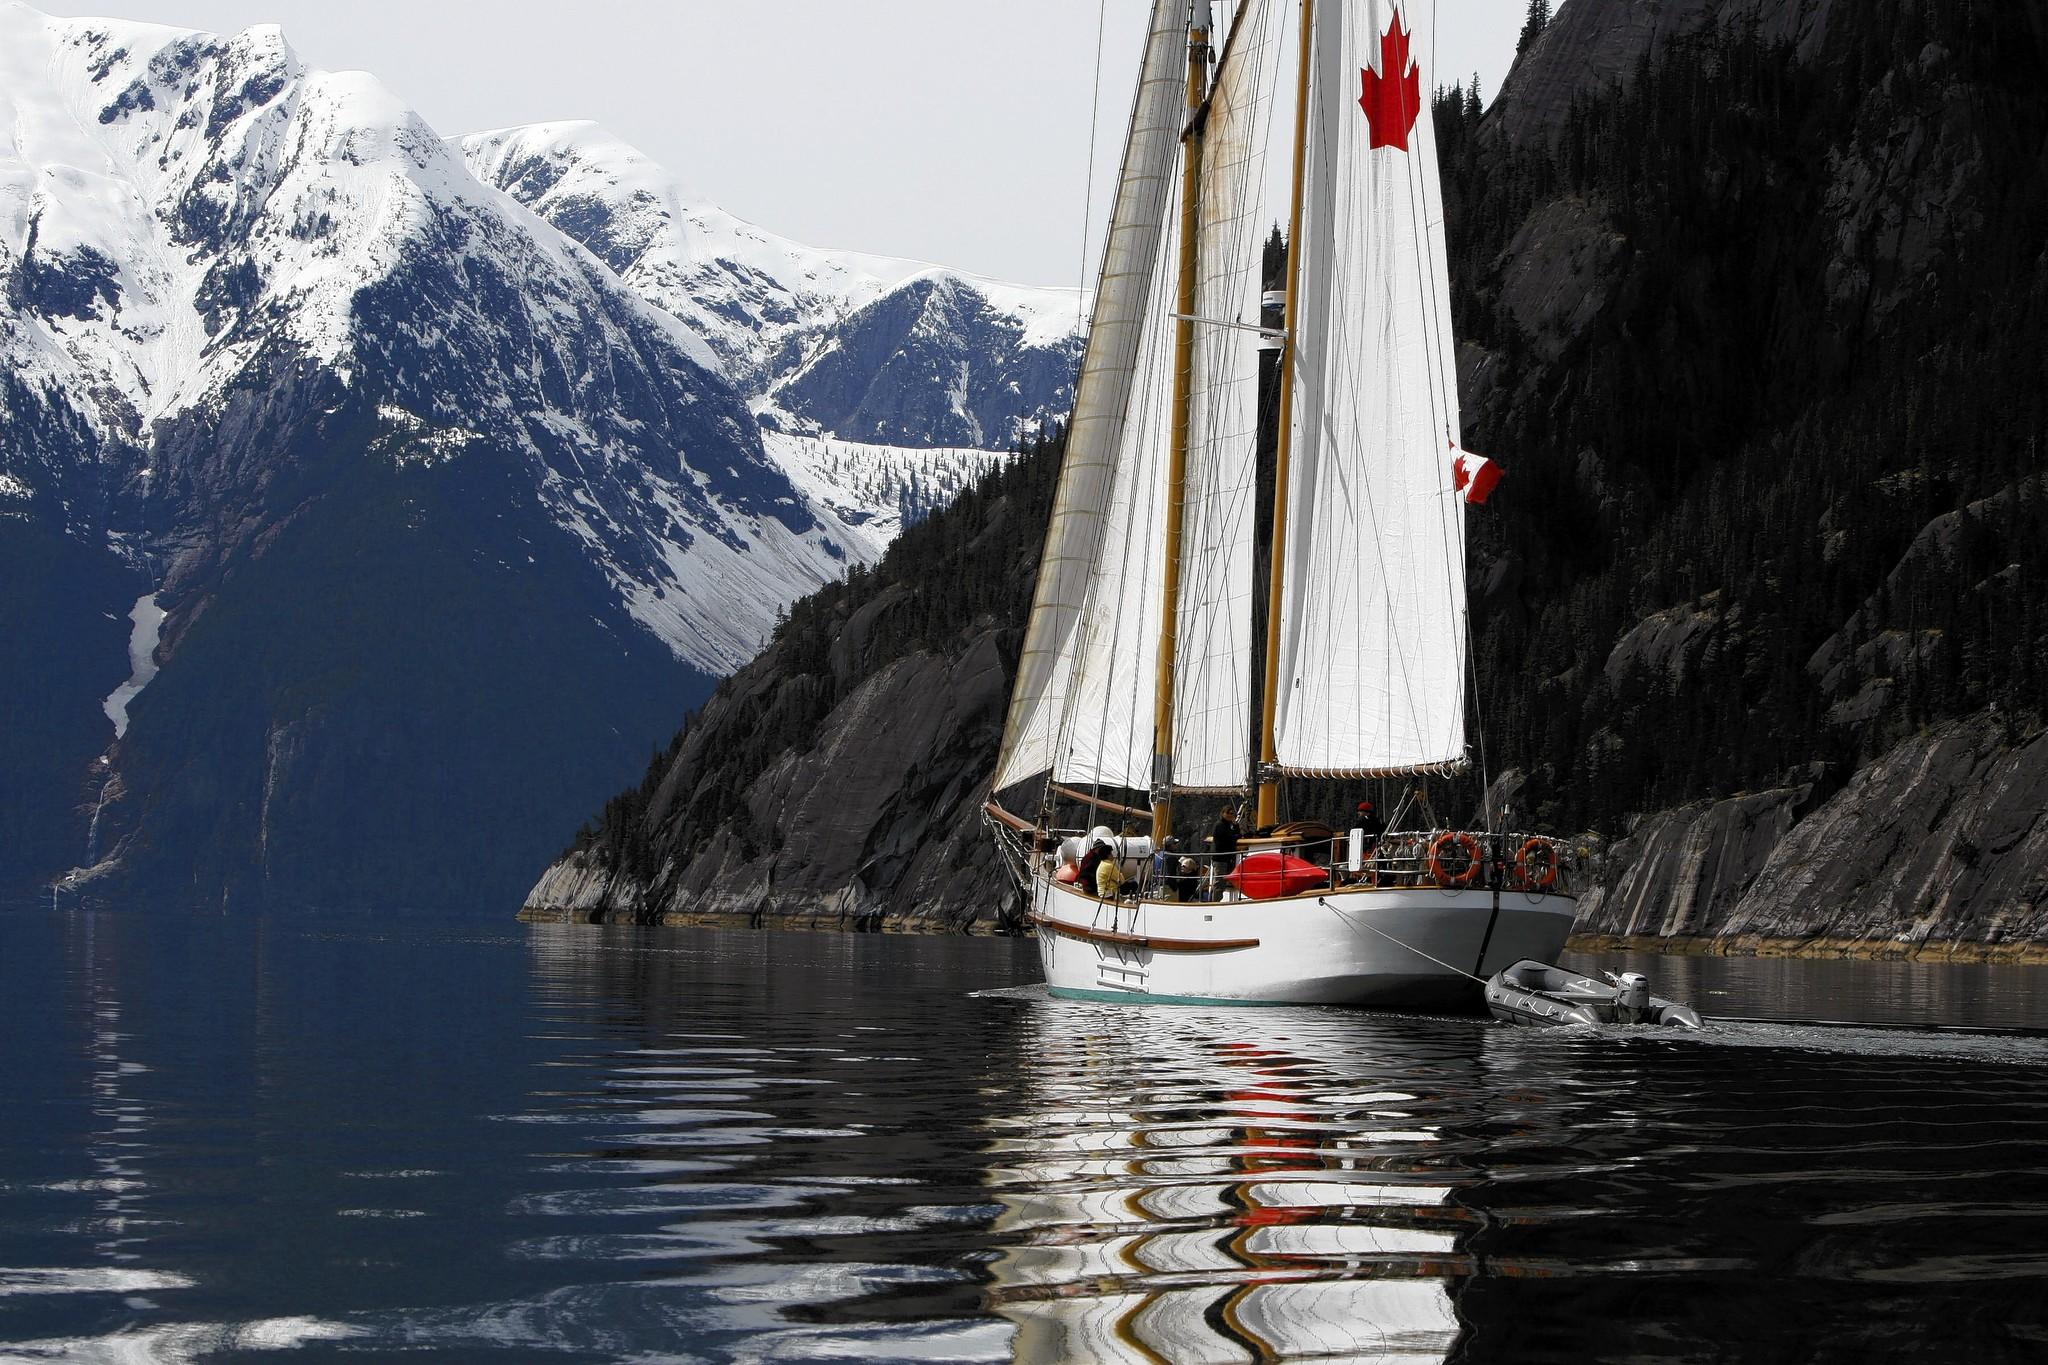 Maple Leaf Adventures uses small ships to get in close to the Canadian wilds.